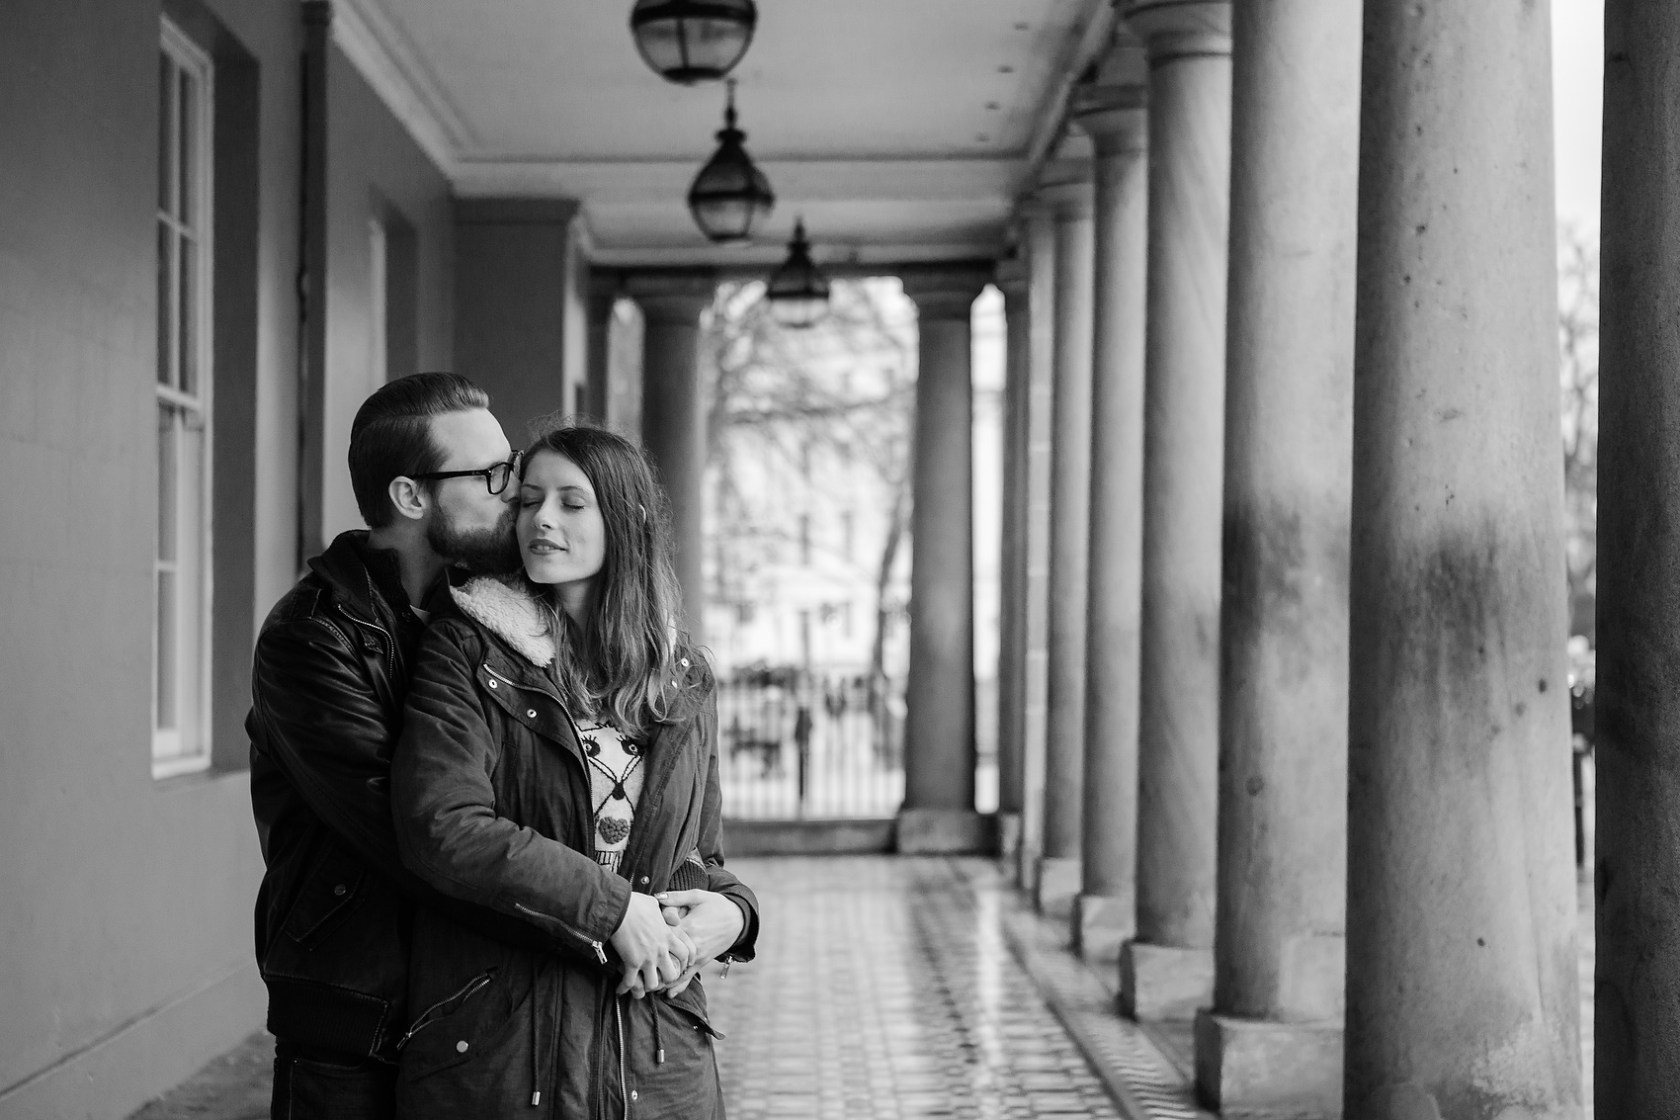 leamington spa wedding photographer pump rooms jephson gardens leamington spa